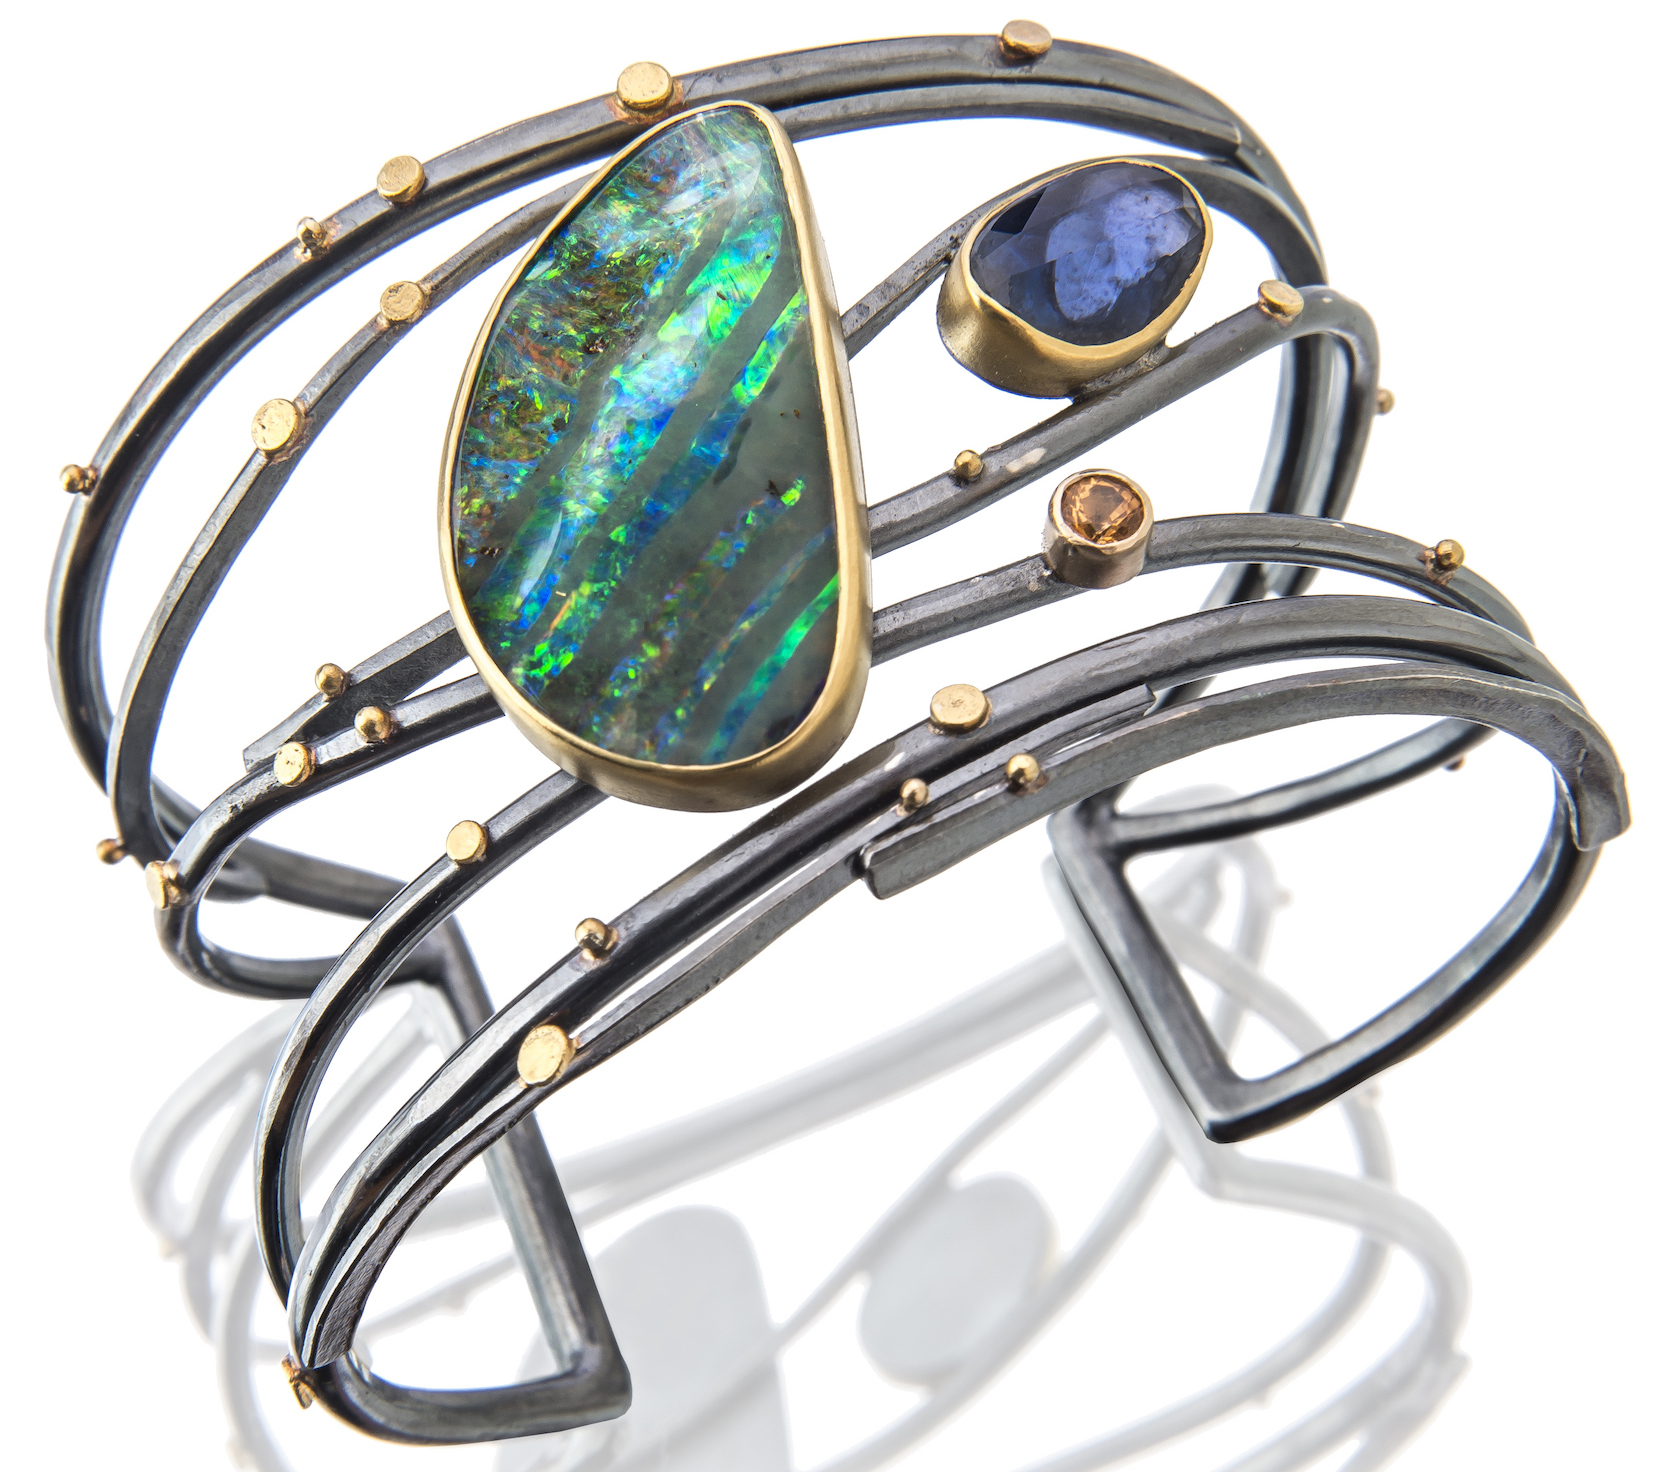 Sydney Lynch Twig Boulder opal cuff bracelet | JCK On Your Market